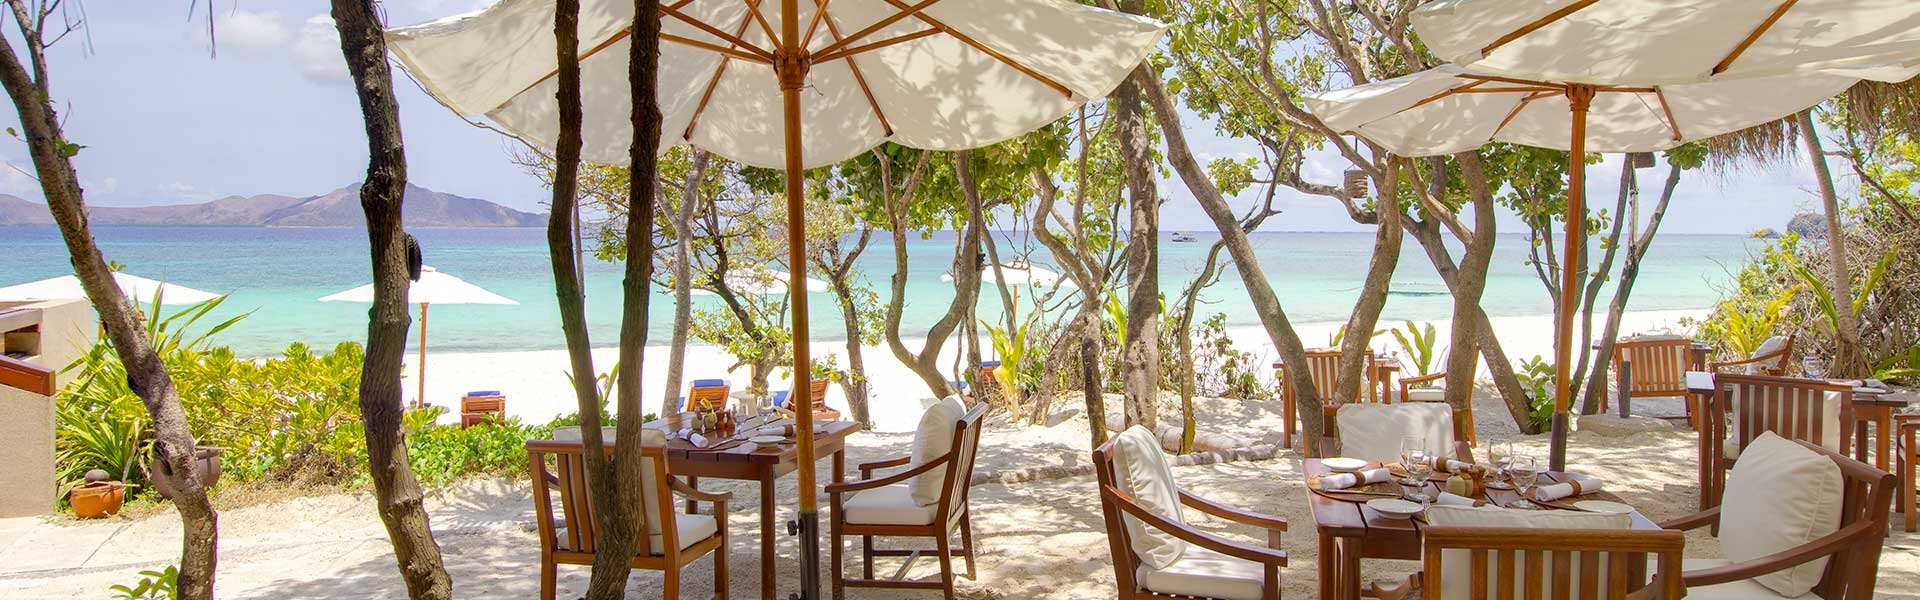 RS238_Amanpulo---Beach-Club-Grove